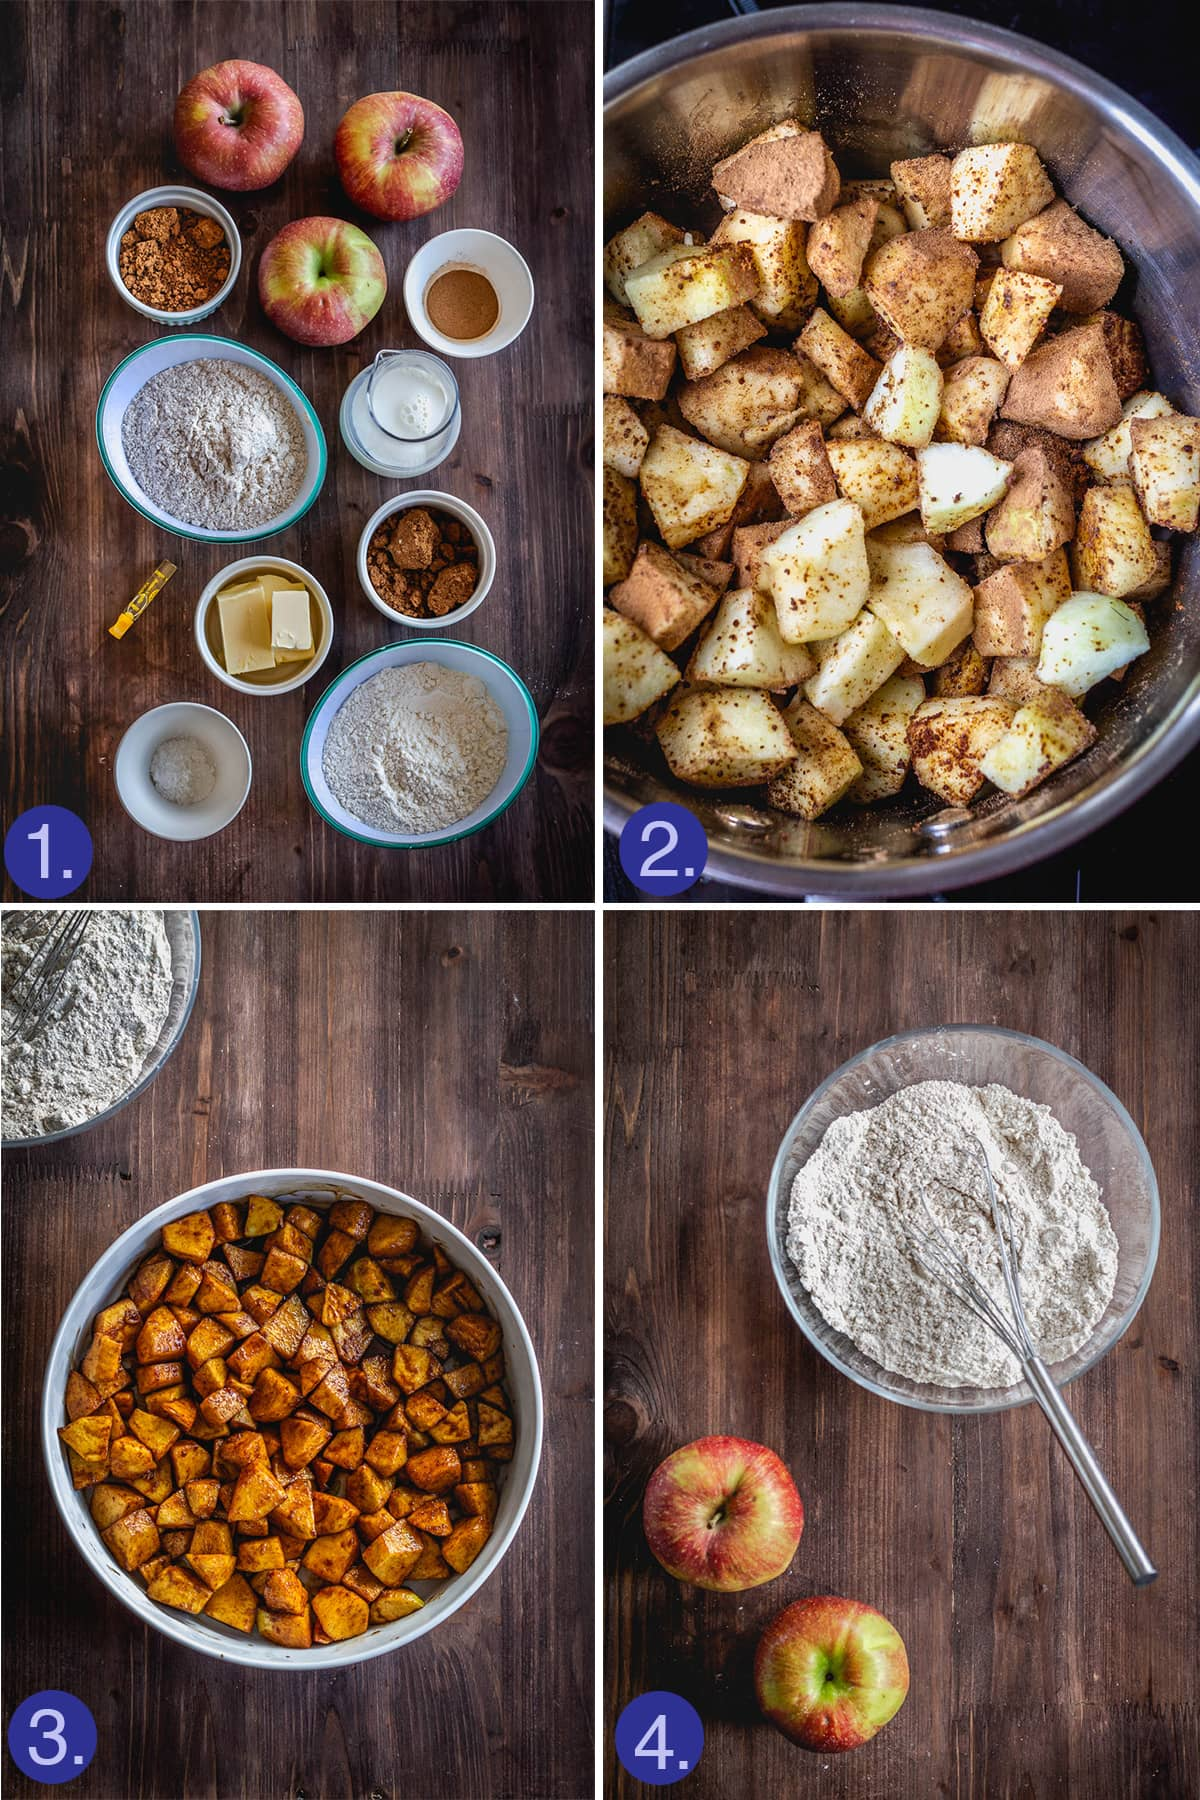 ingredients and initial steps to make the cobbler